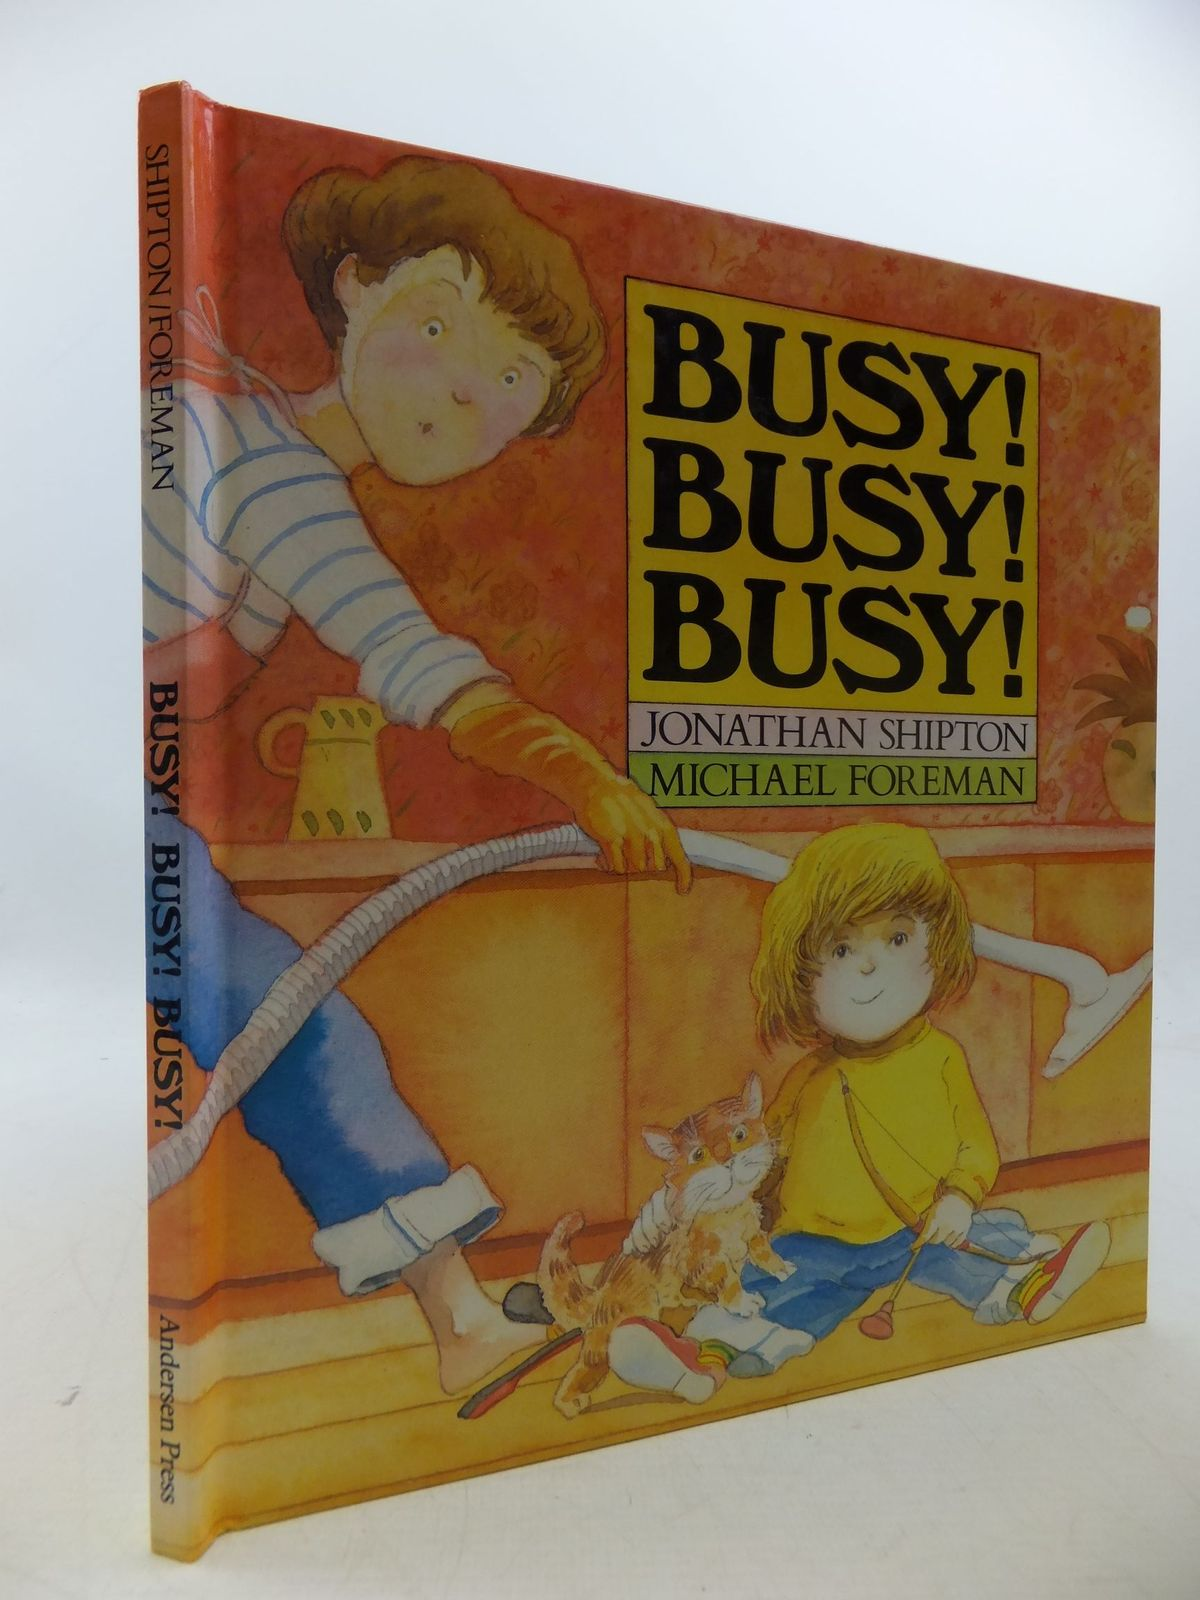 Photo of BUSY! BUSY! BUSY! written by Shipton, Jonathan illustrated by Foreman, Michael published by Andersen Press (STOCK CODE: 1710148)  for sale by Stella & Rose's Books